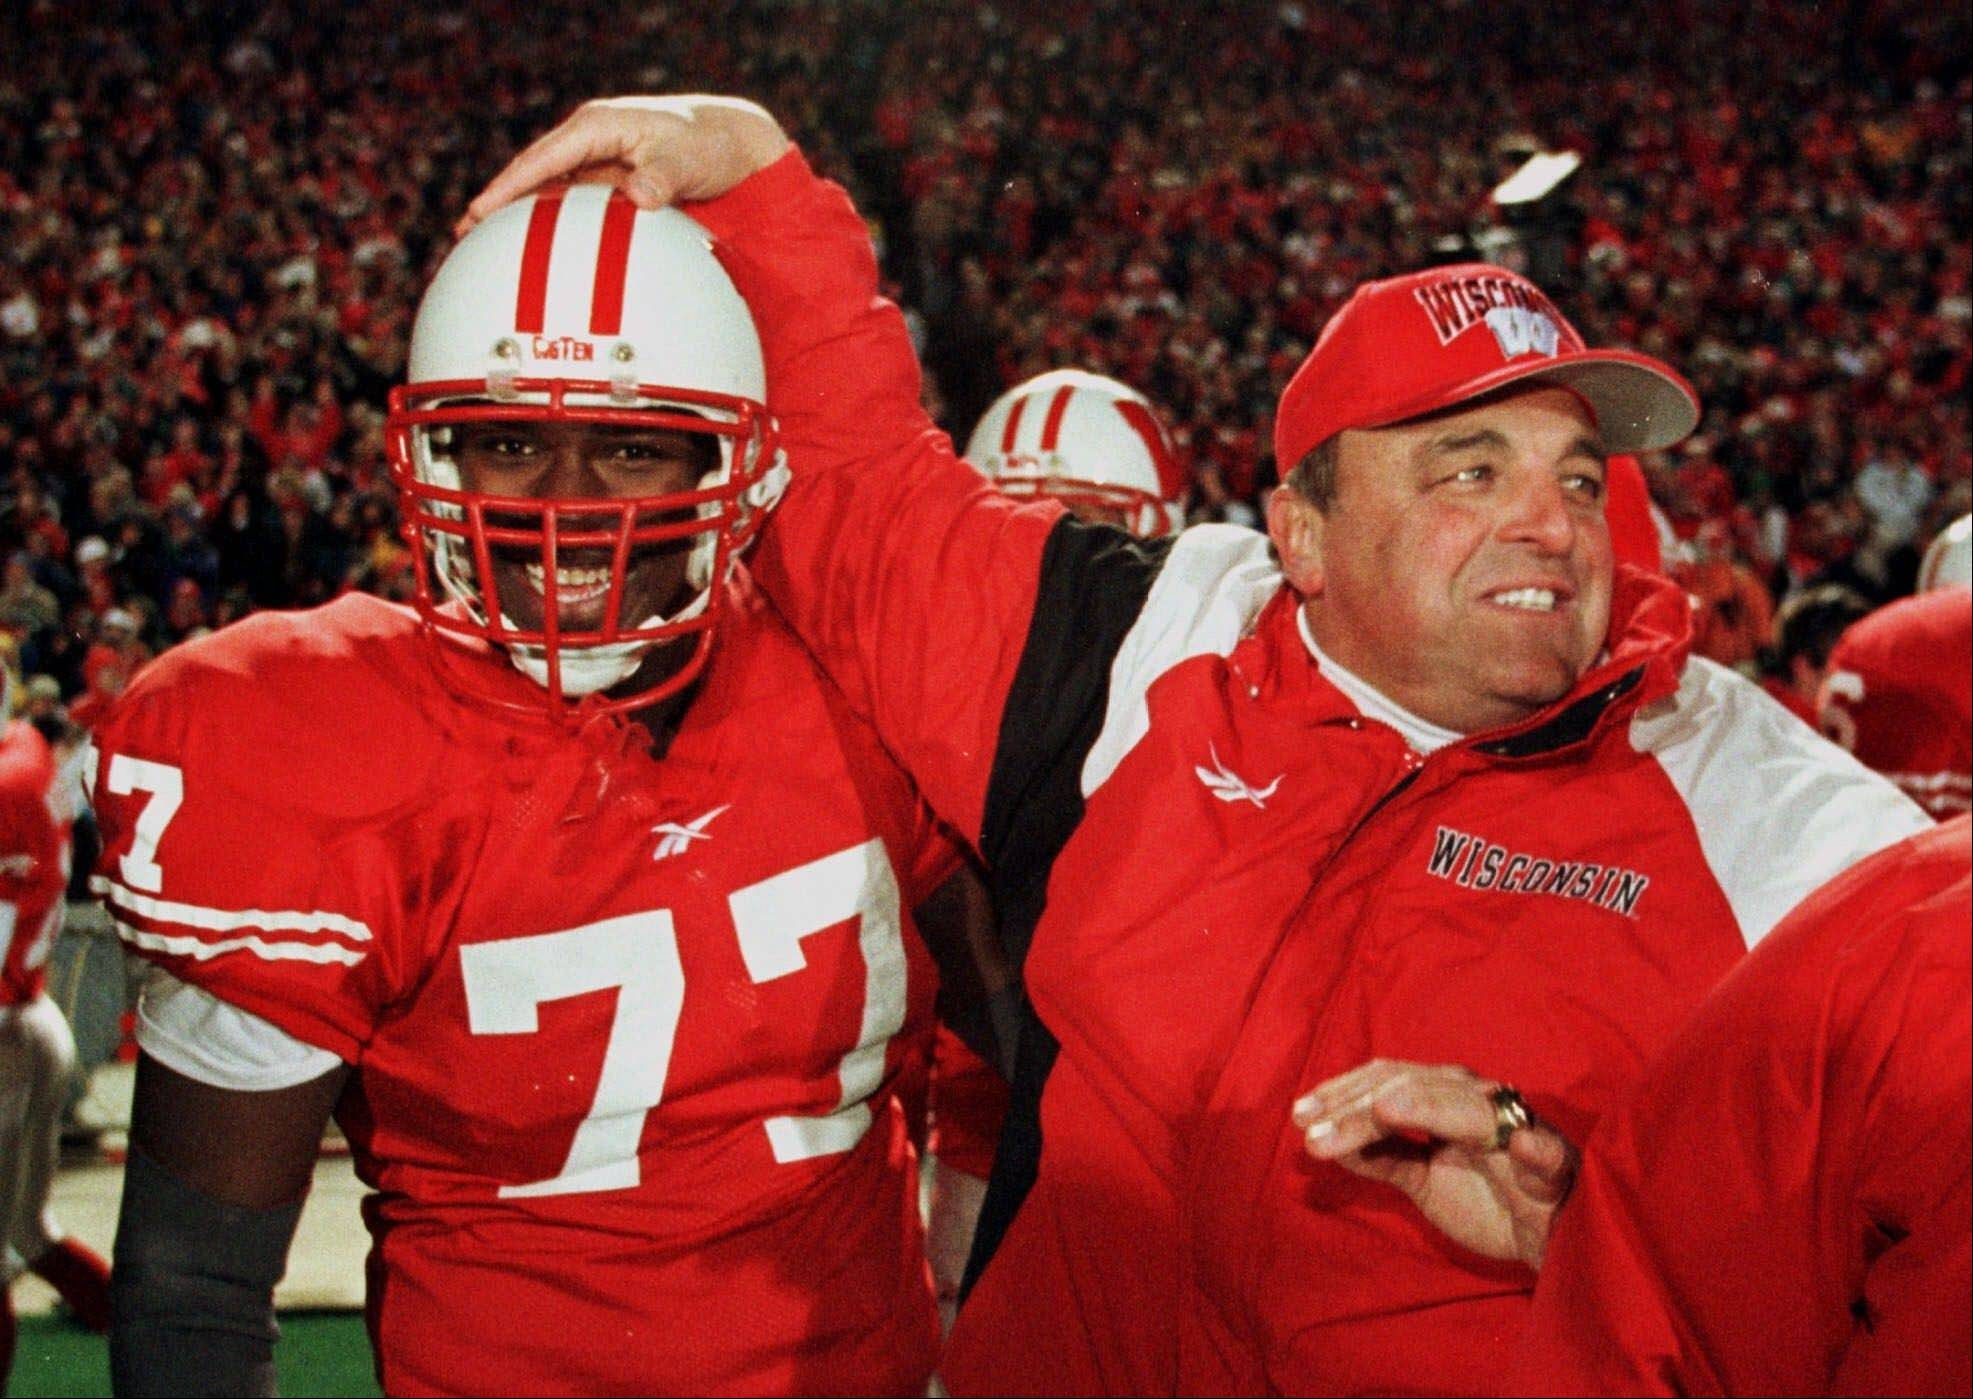 Thirty years after he finished his playing career at Nebraska, Barry Alvarez went to Wisconsin and built the Badgers' program in the image of the Cornhuskers. No one's more excited than Alvarez, now Wisconsin's athletic director, about Nebraska playing its inaugural Big Ten game on the Badgers' field on Saturday.